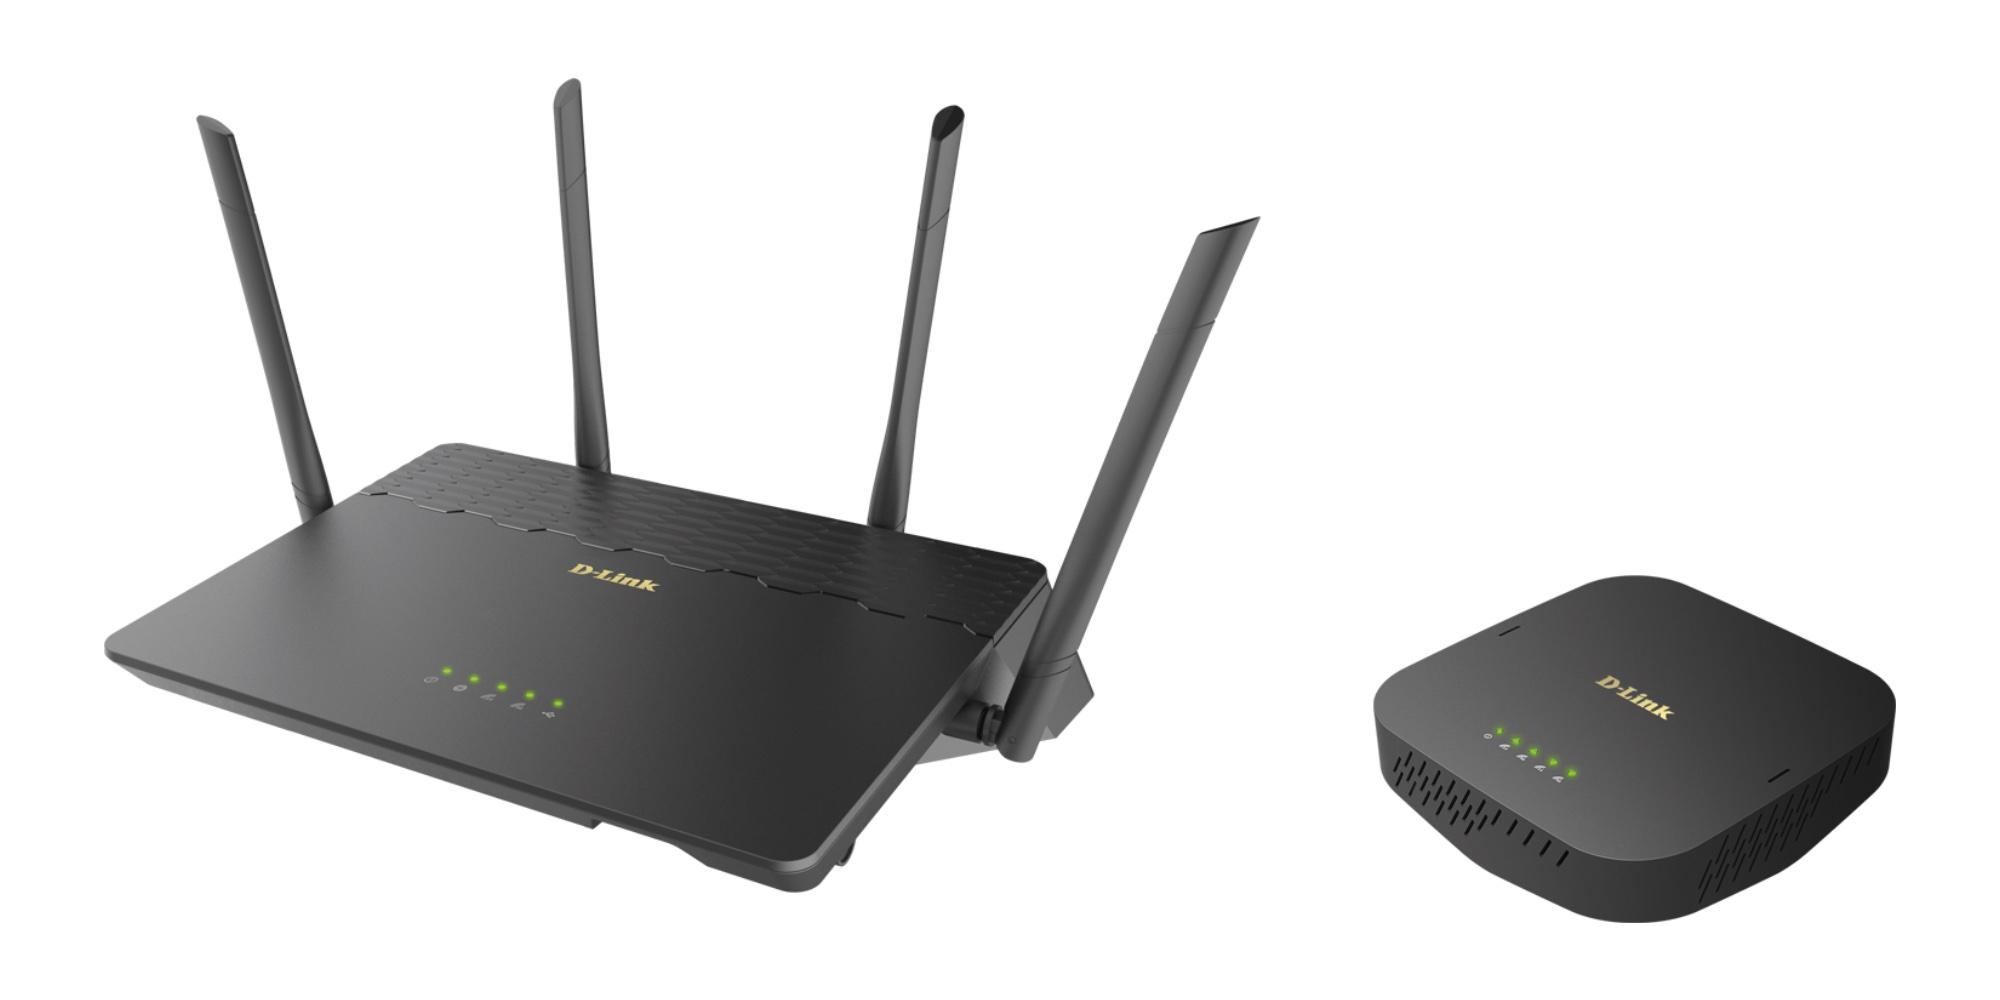 D-Link's $150 COVR 802.11ac Wi-Fi System blankets your home in 2.5Gbps speeds ($40 off)